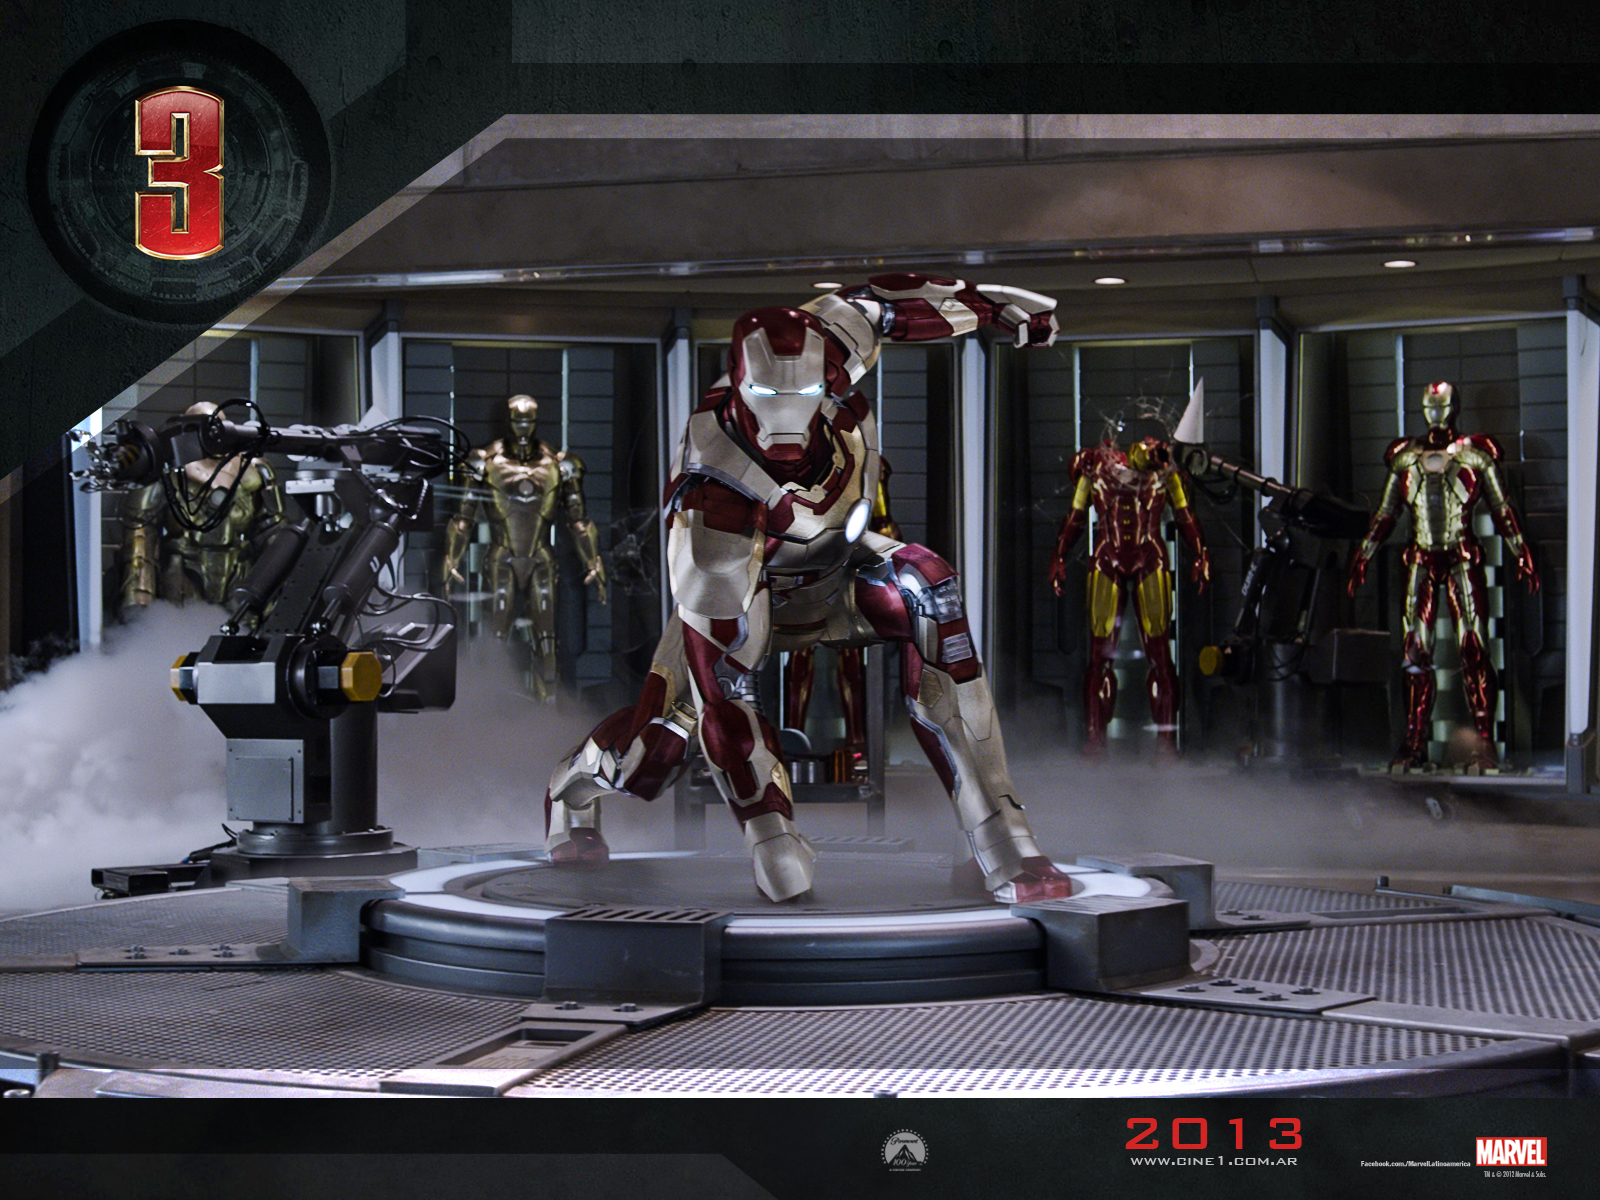 Iron Man 3 Wallpaper   Iron Man 3 Wallpaper 33506146 1600x1200